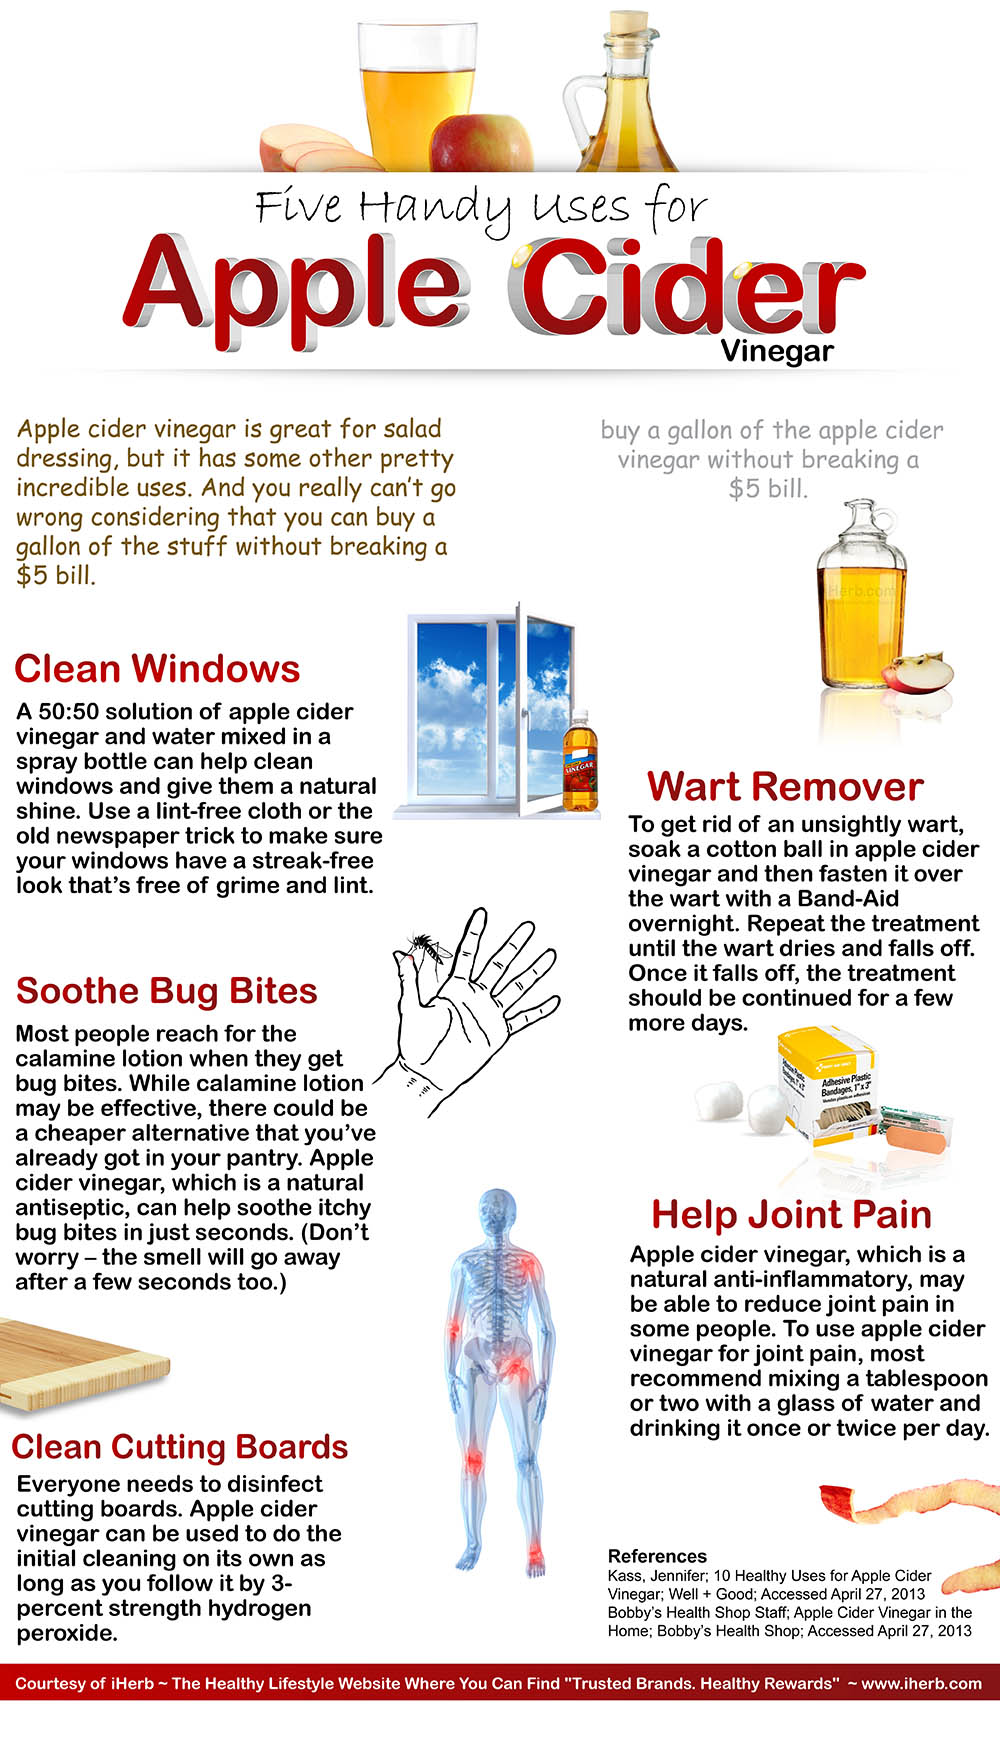 5-Handy-Uses-for-Apple-Cider-Vinegar1